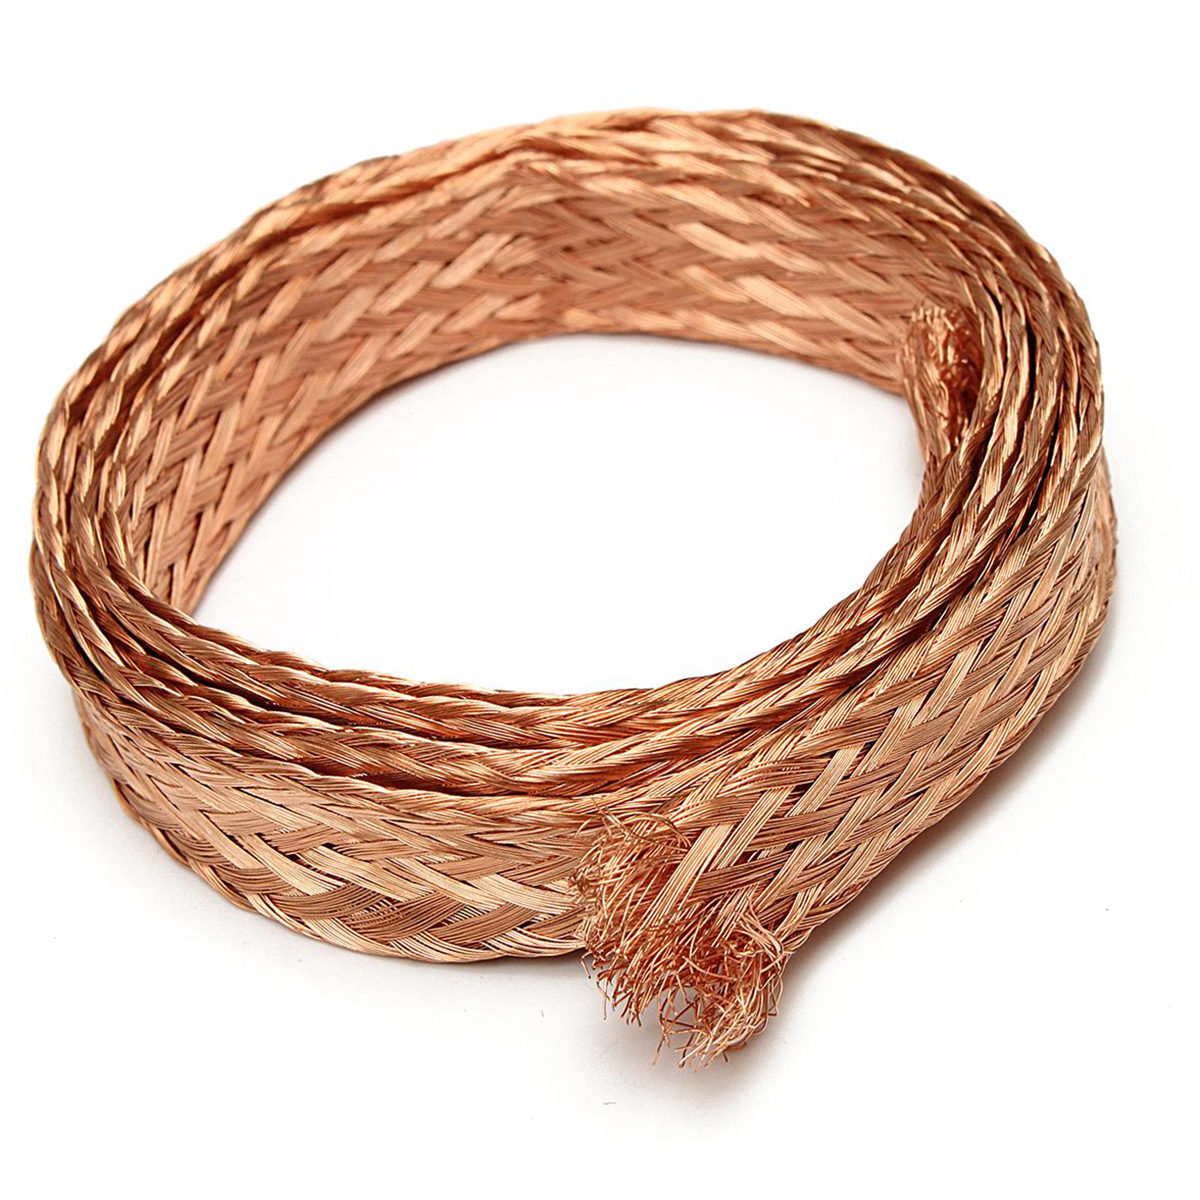 1m Flat Pure Copper Braid Cable 3.3ft 22mm Bare Cooper Wire Ground Lead High Flexibility  1m 15mm flat tinned copper braid sleeve screening tubular cable diy